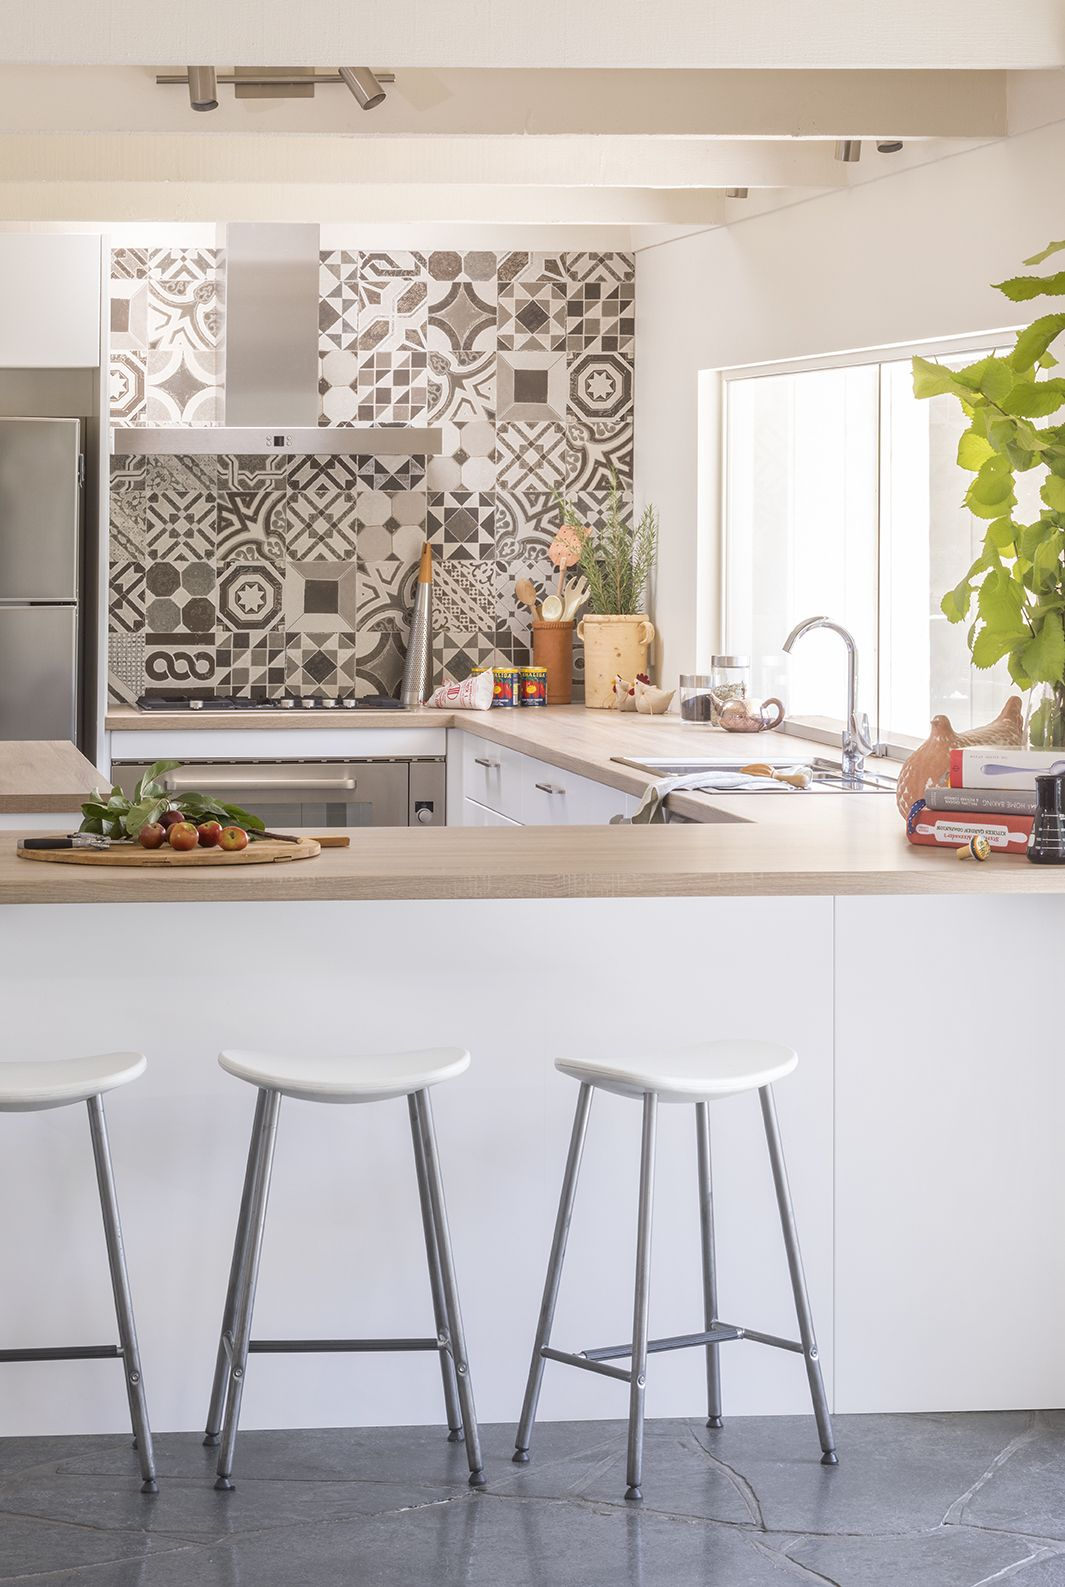 Need some splashback inspiration? Check out this show-stopping space ...